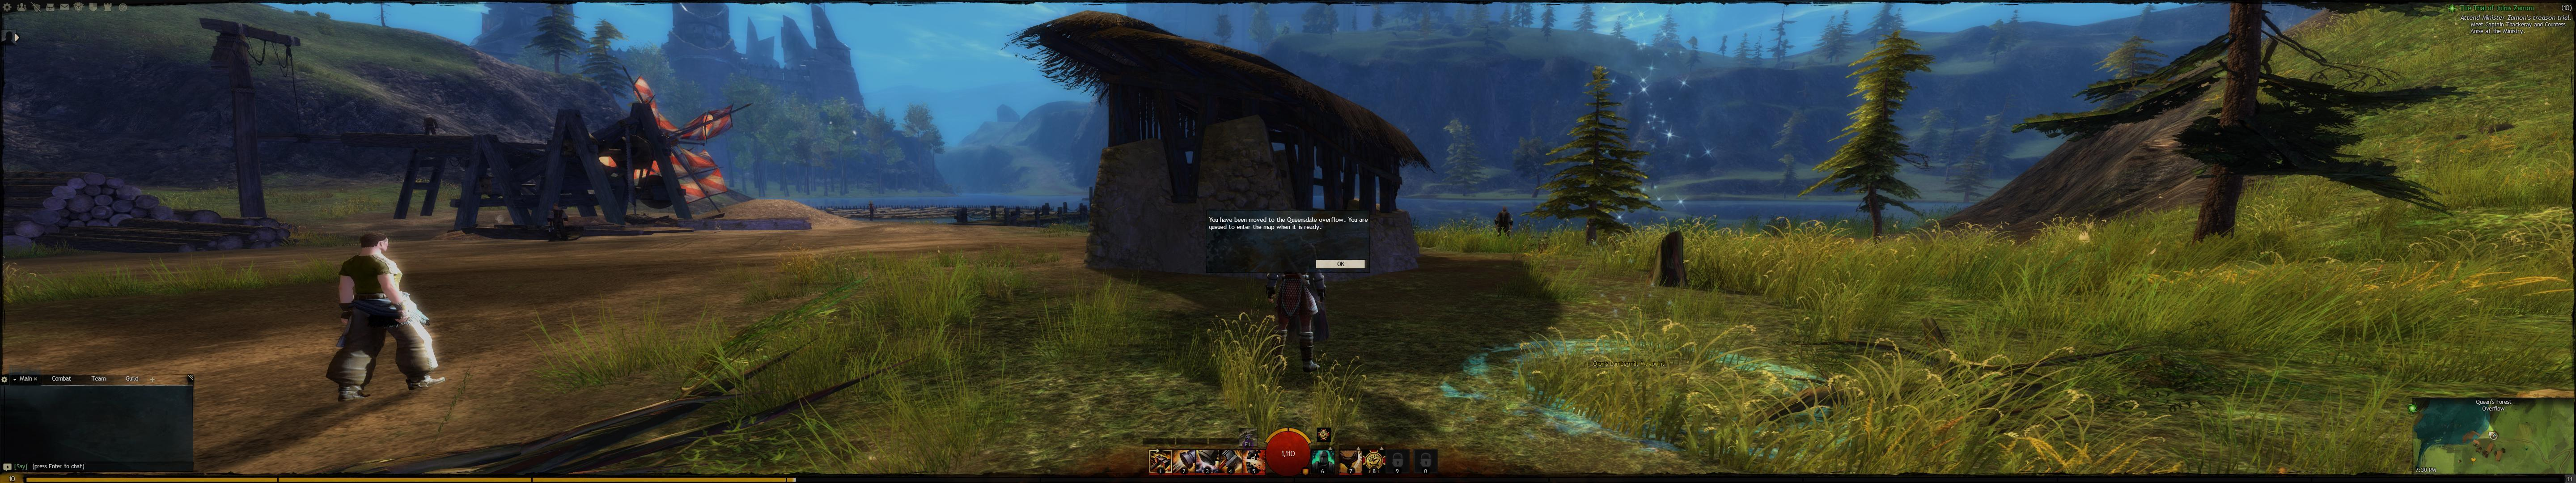 Does Guild Wars 2 have multi-monitor support? - PC/Mac/Linux